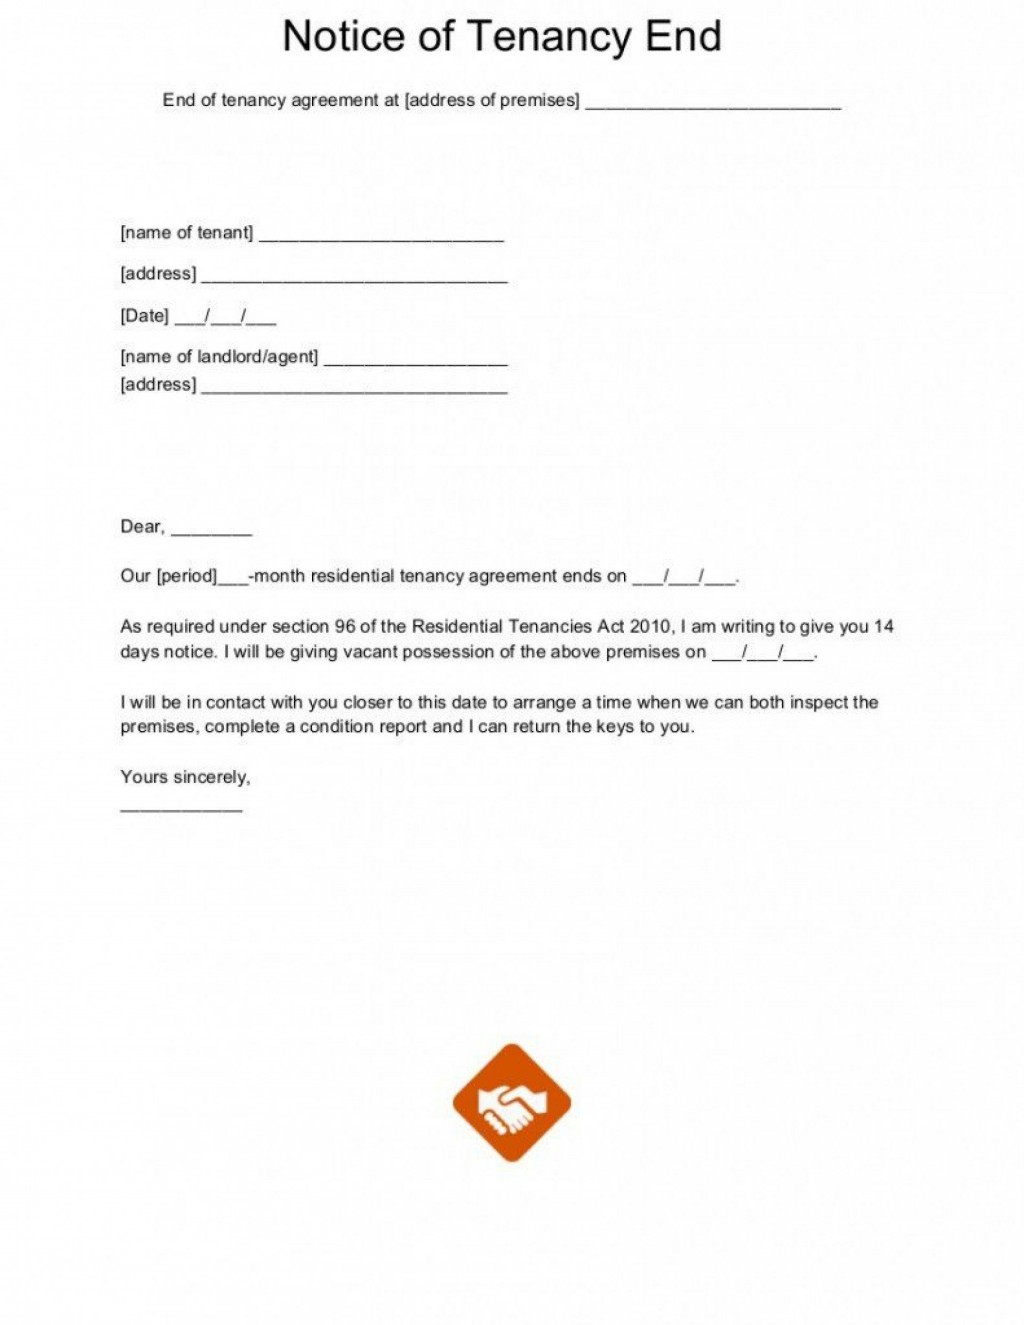 005 Formidable Template Letter To Terminate Rental Agreement Image  End Tenancy For Landlord EndingLarge